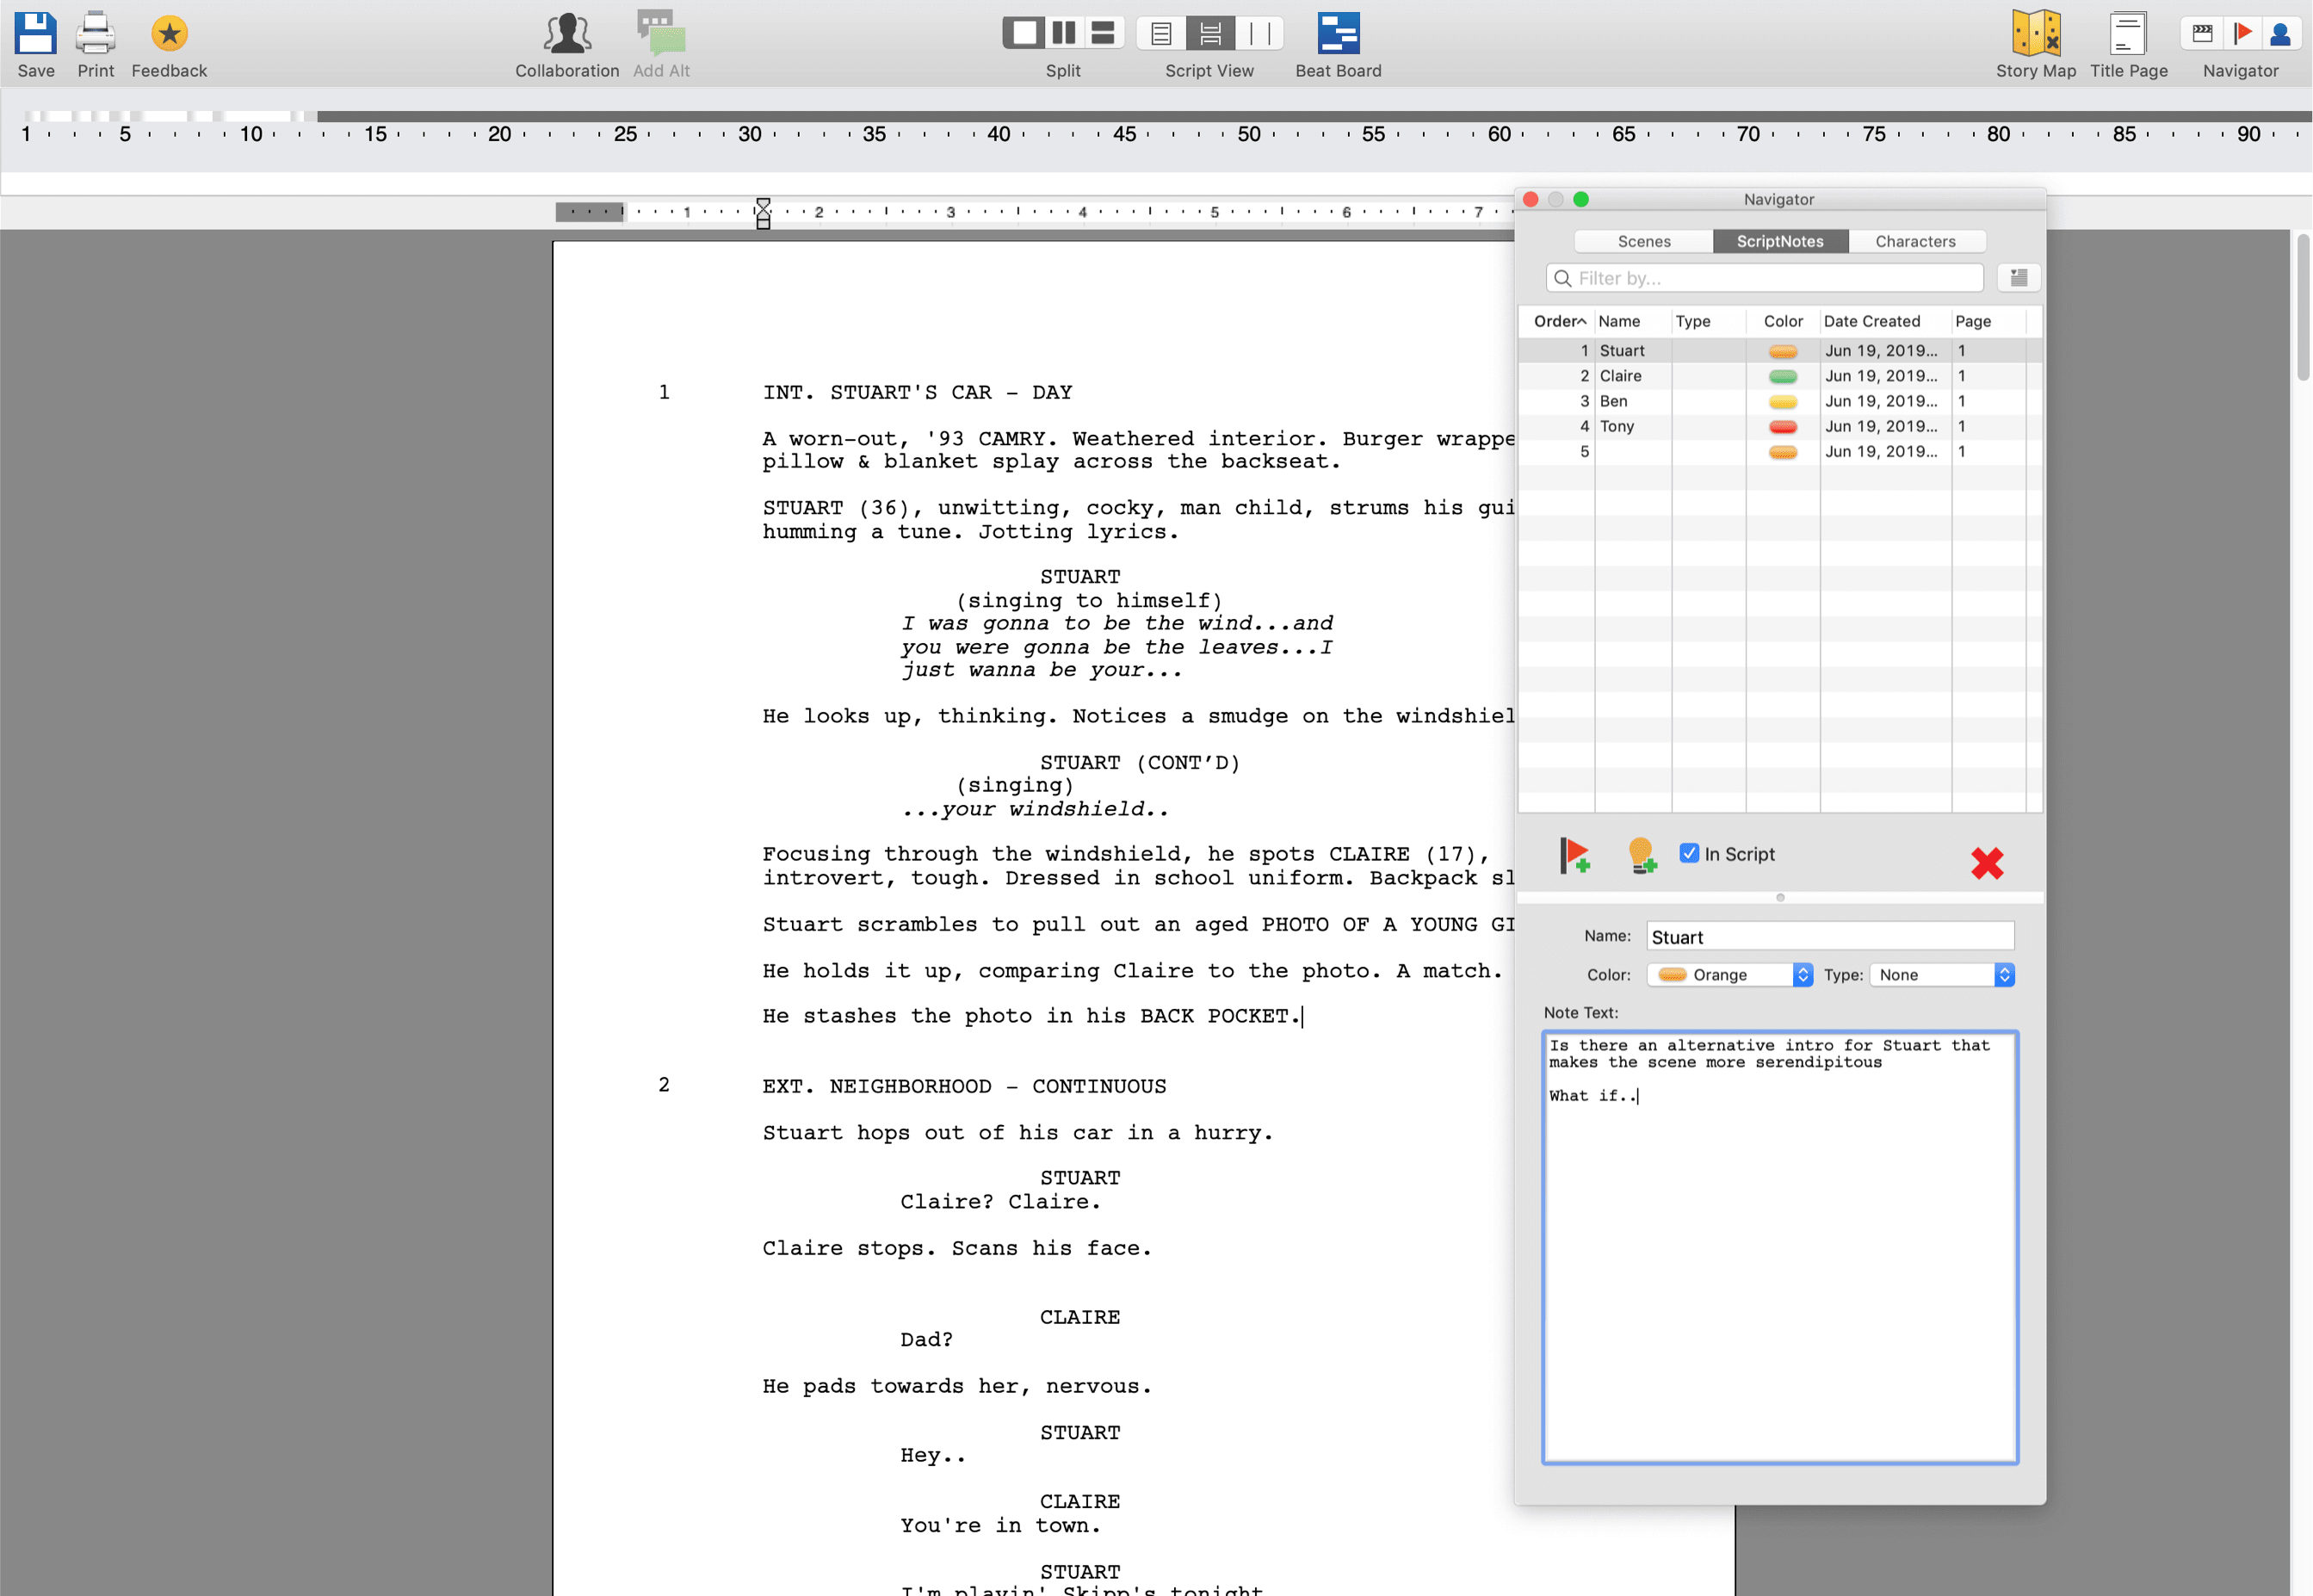 Best Alternative to Final Draft Scriptnotes - Meet StudioBinder's Scriptwriting Software